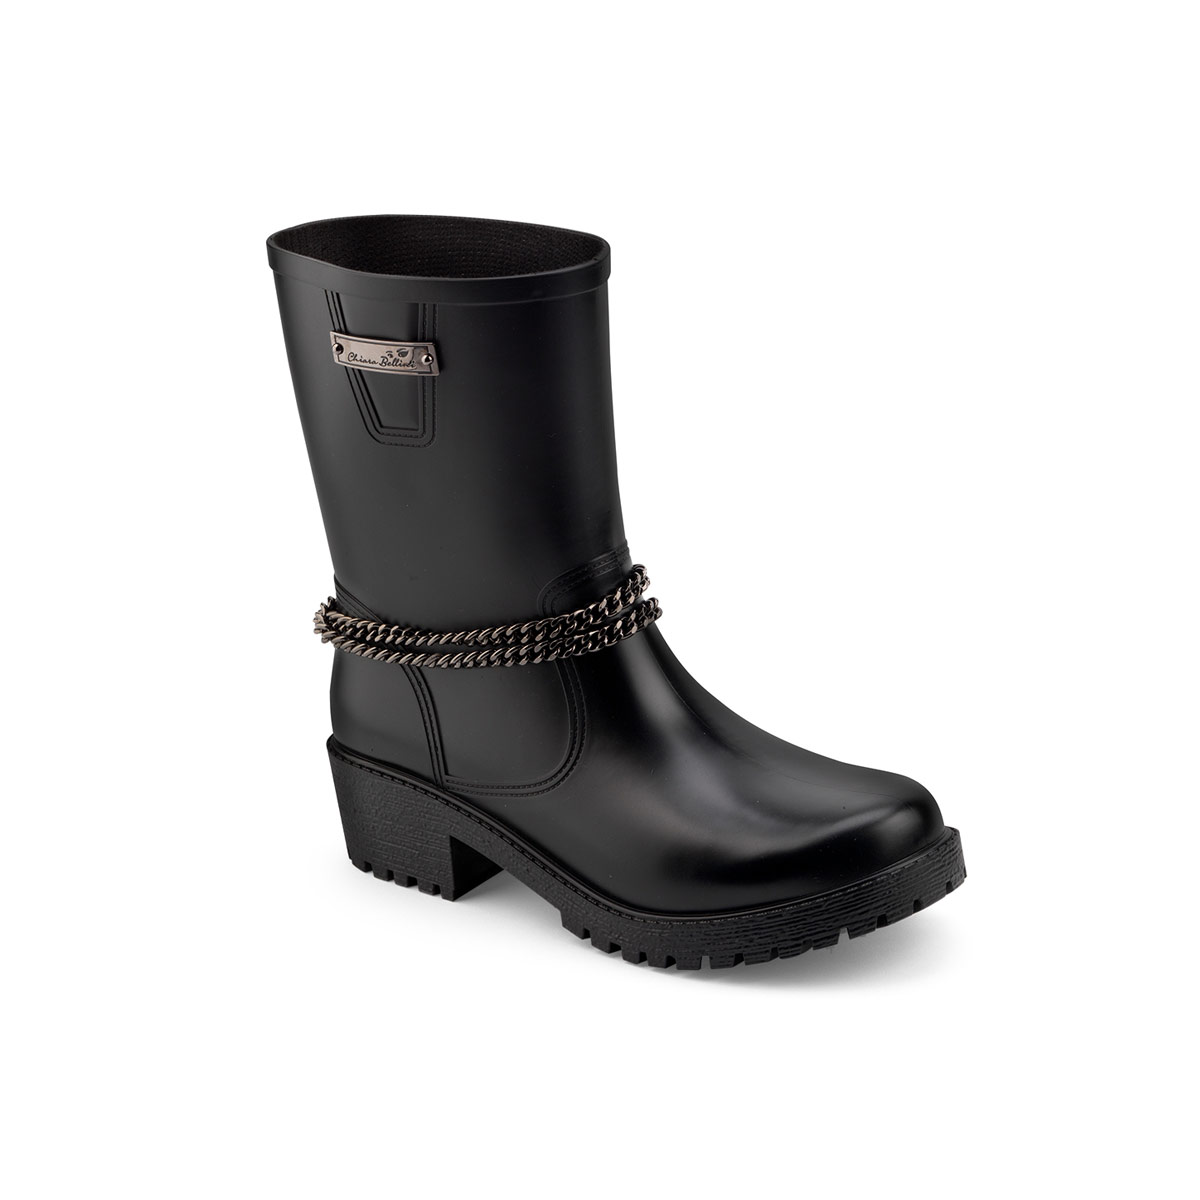 Biker boot with a double ankle chain